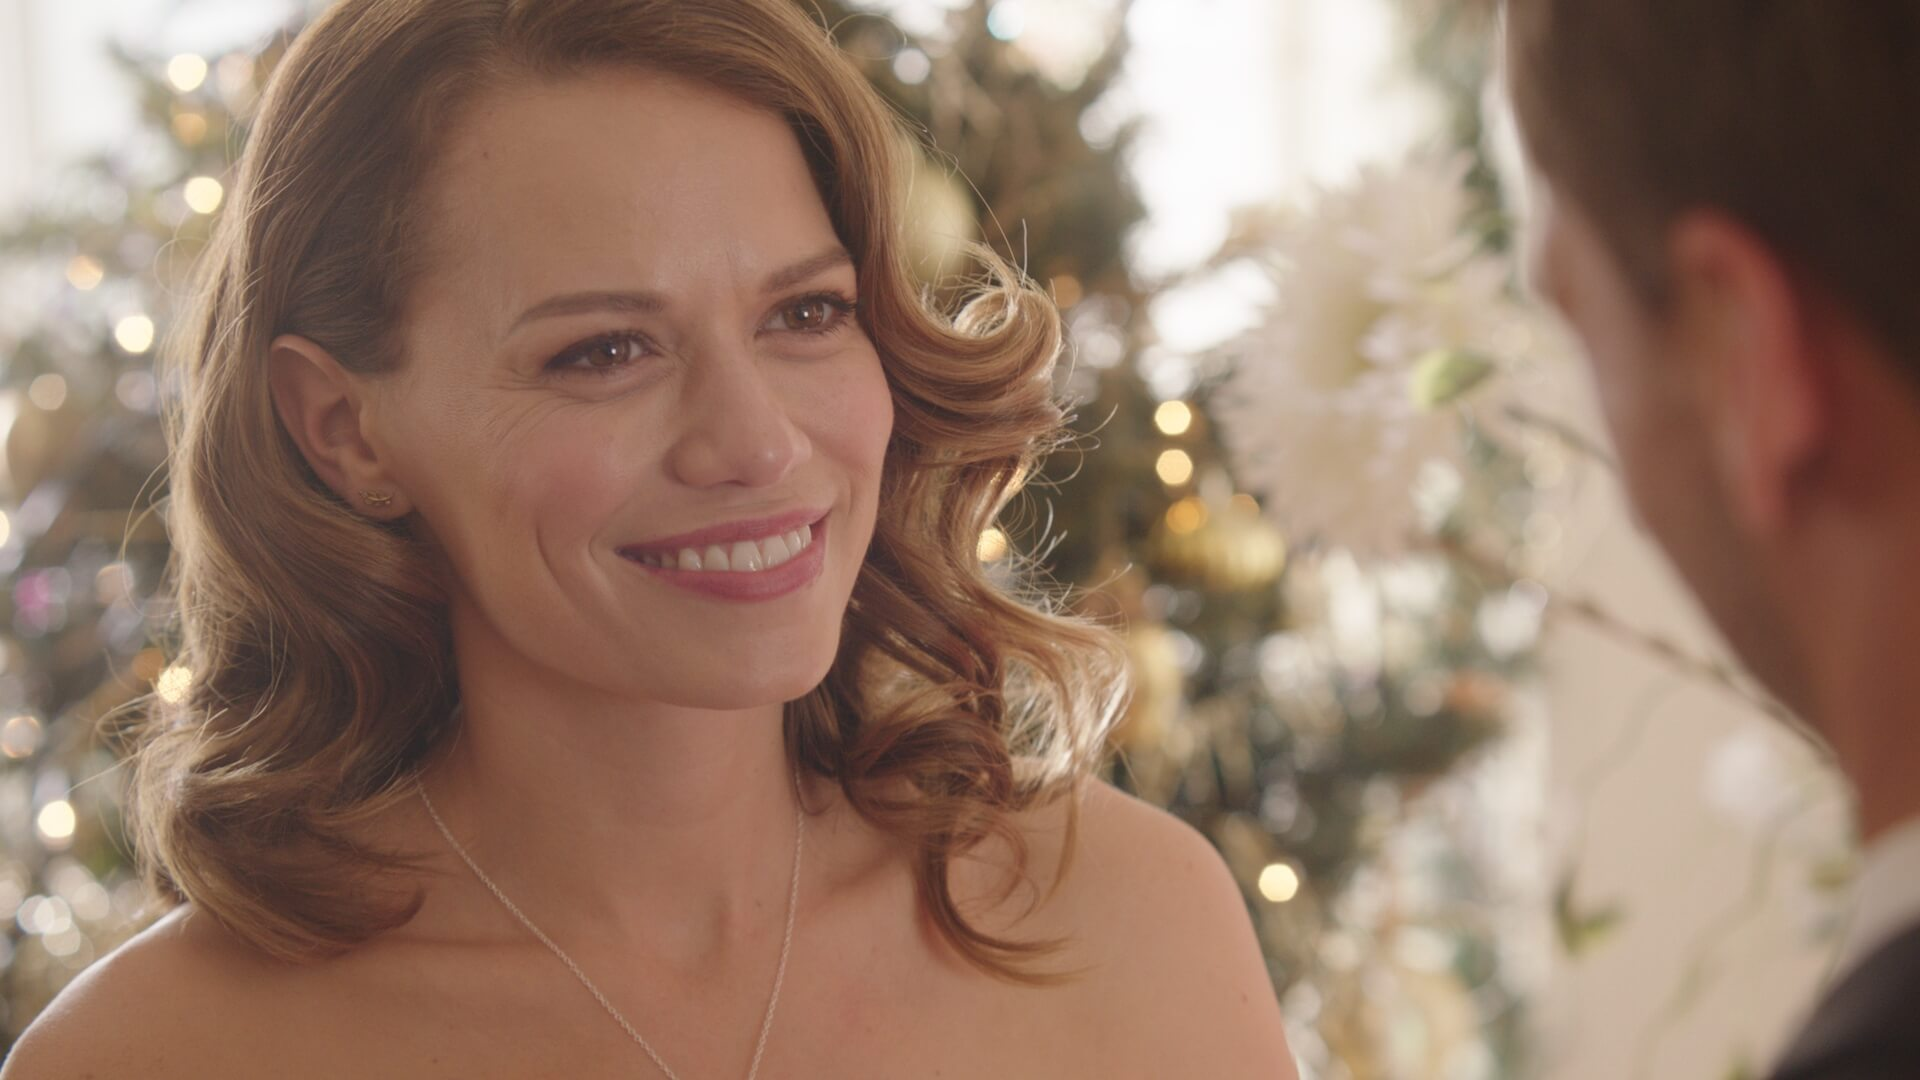 Podcast interview with Bethany Joy Lenz from One Tree Hill